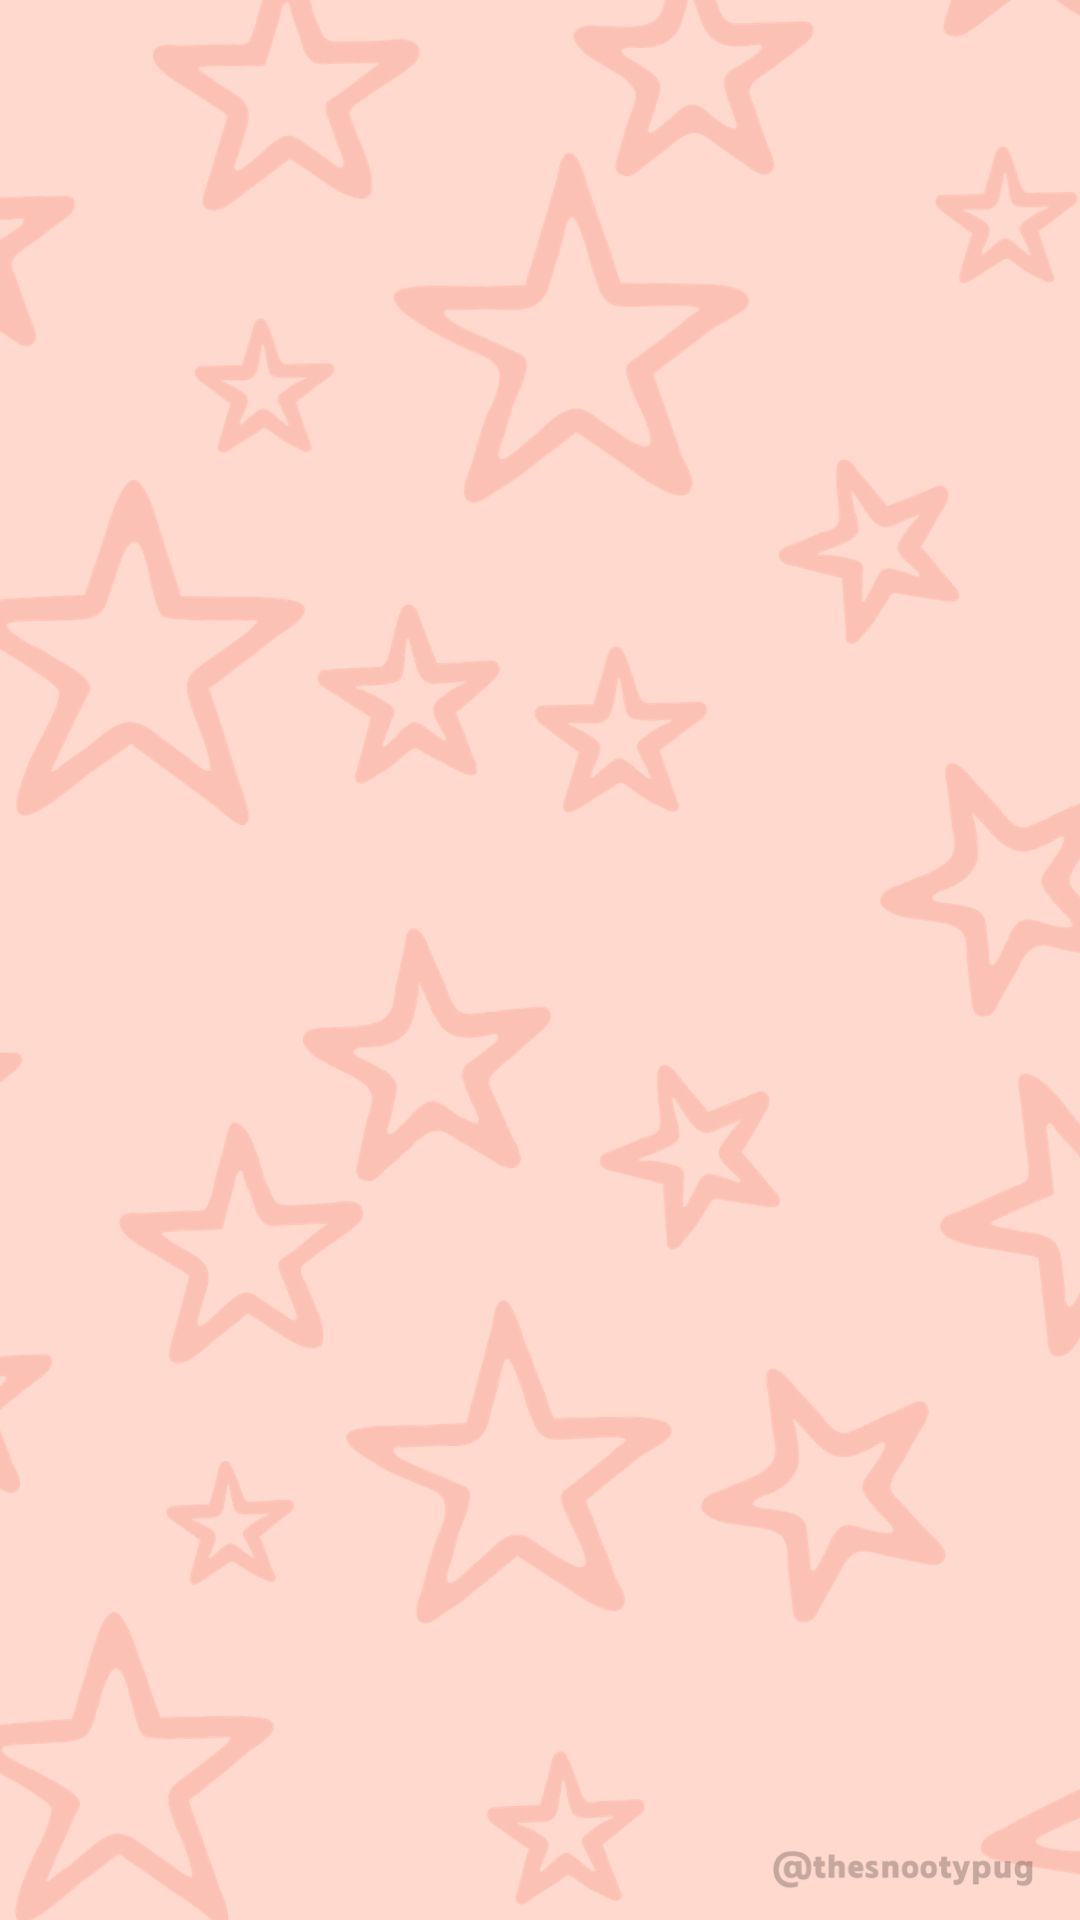 Pink Star Wallpaper In 2020 Artsy Background Cute Patterns Wallpaper Star Wallpaper